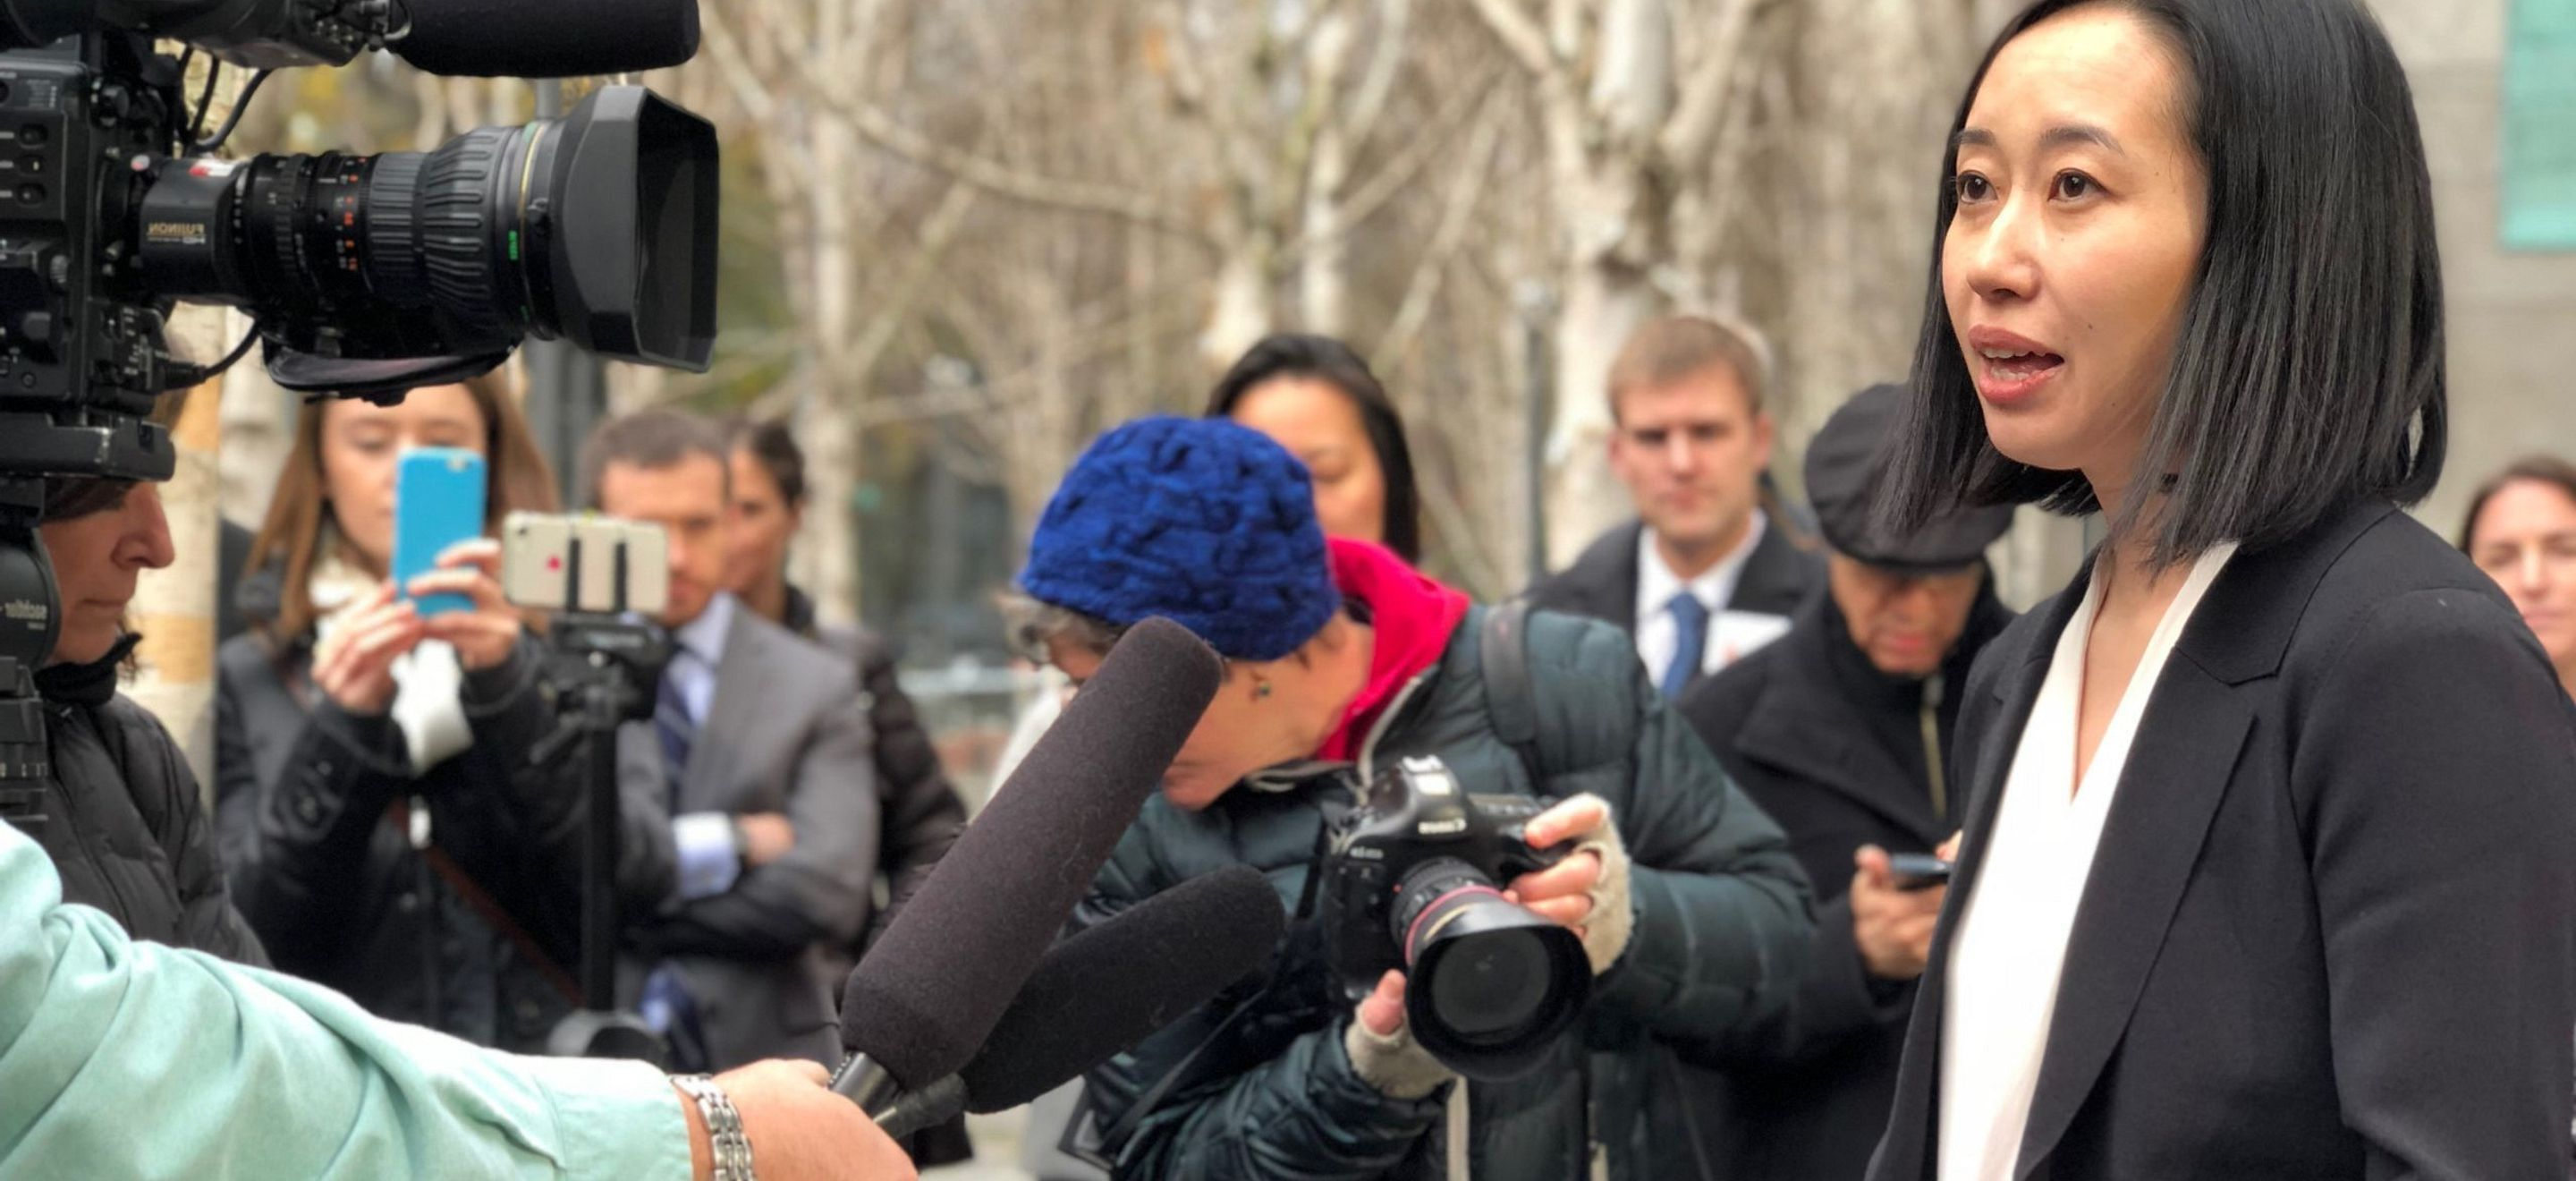 Mariko Hirose, IRAP Litigation Director, addresses journalists at an outdoor press conference. She is surrounded by several journalists with cameras, microphones and notepads. She has straight, shoulder length black hair and wears a white blouse and black blazer.